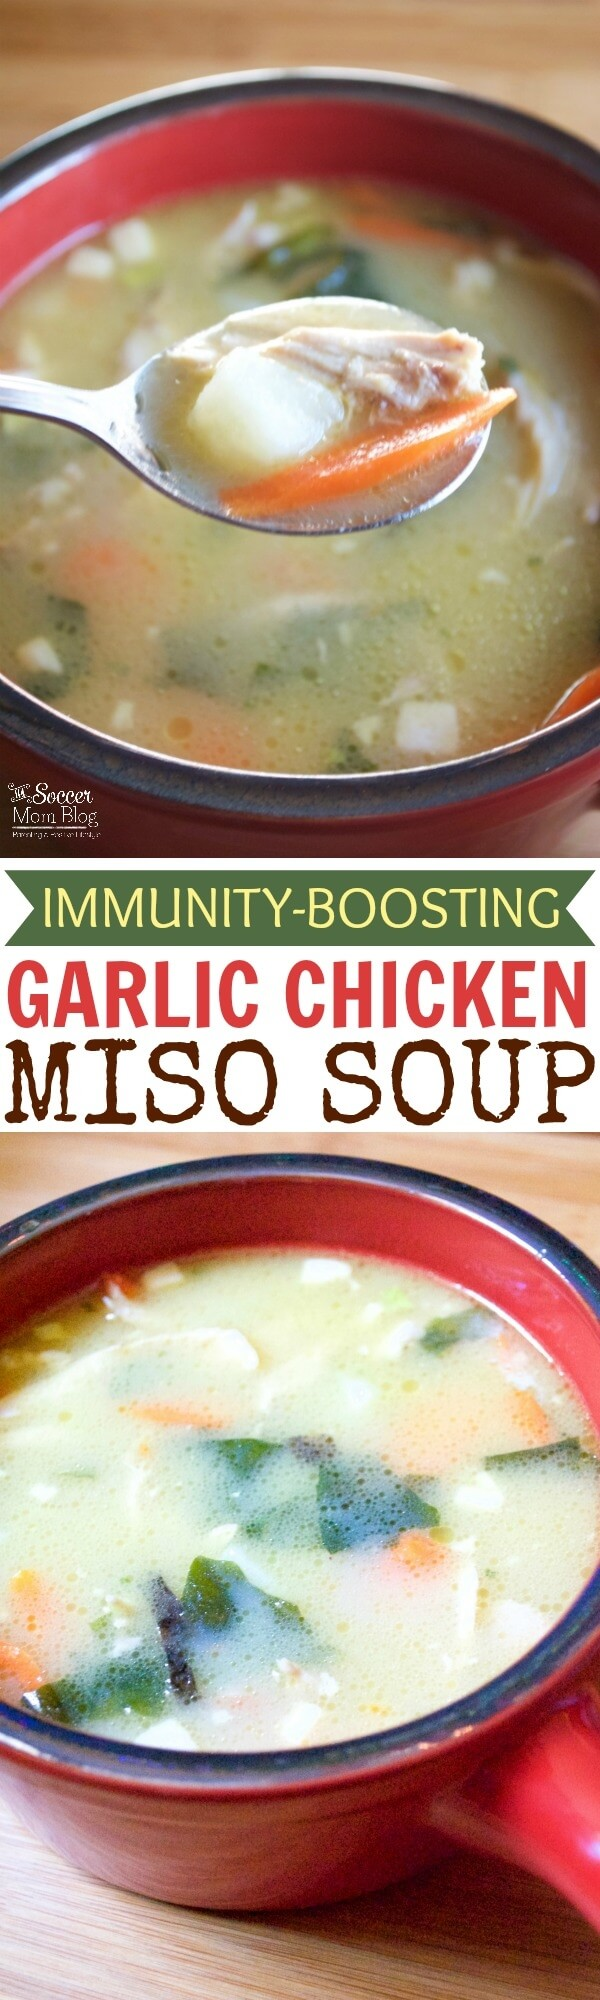 This ain't your grandma's chicken soup! Immunity boosting Garlic Chicken Miso Soup is flavor packed, nutrient dense, and kid-approved!